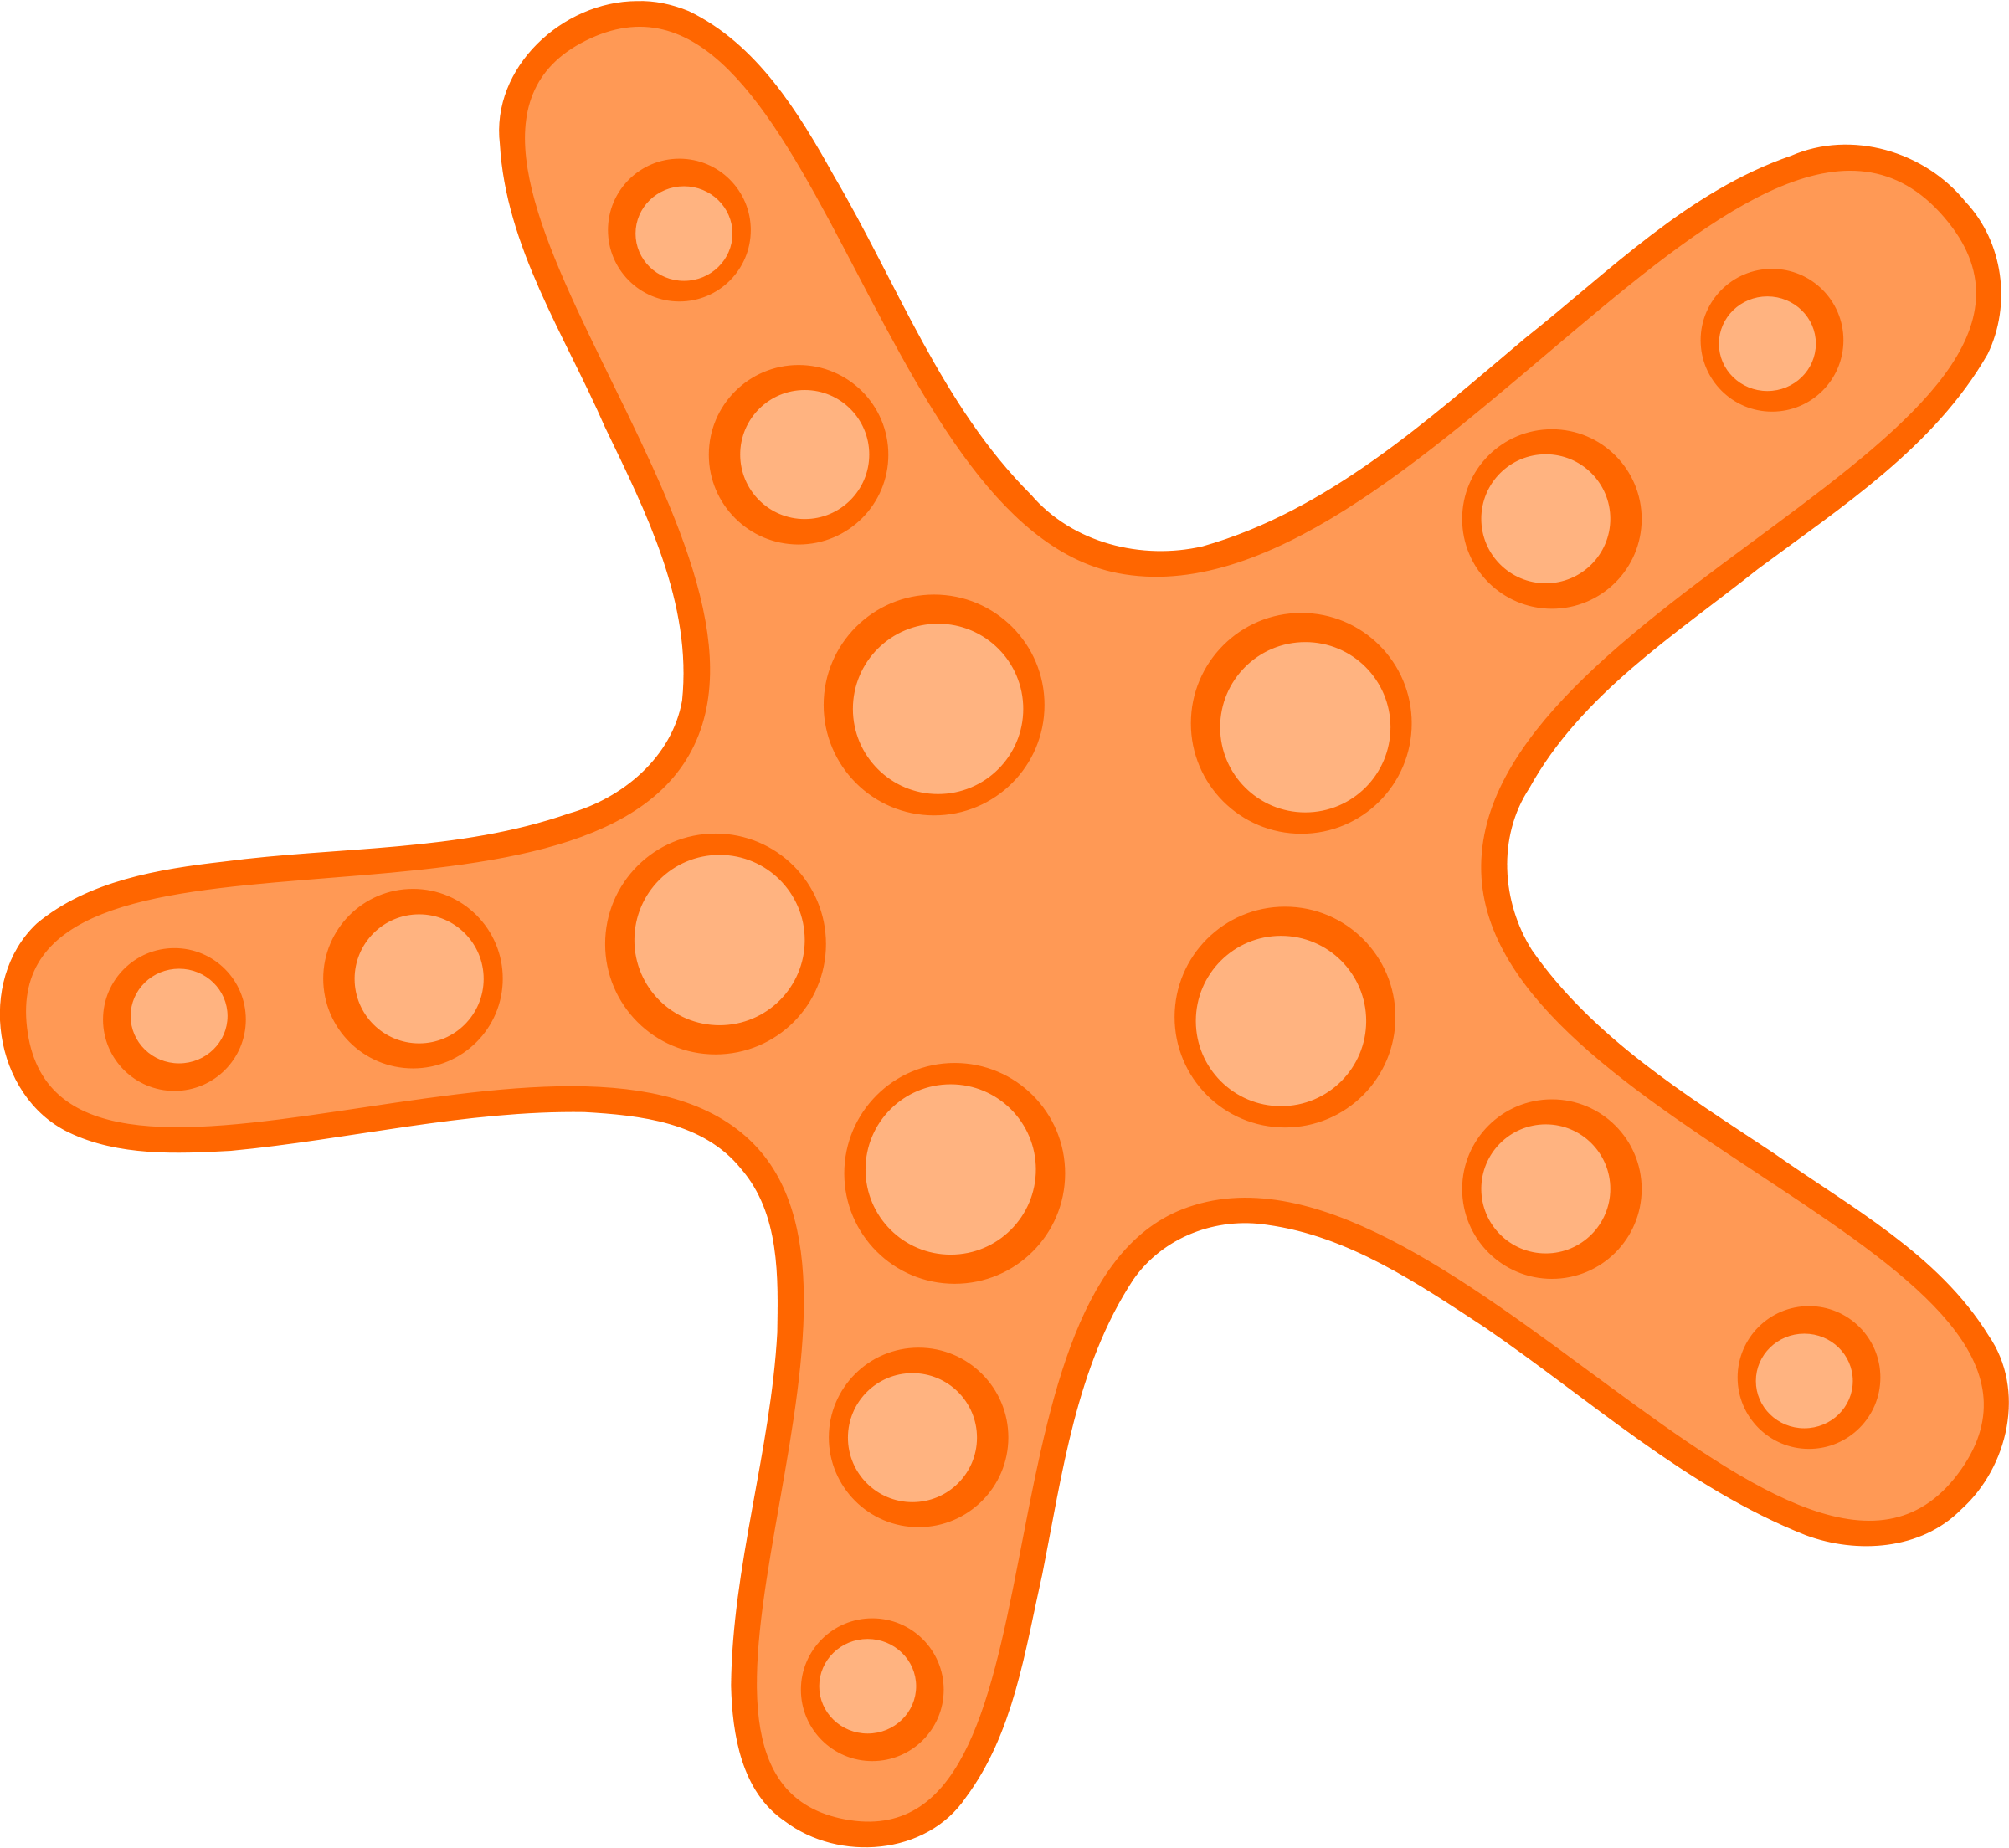 starfish clipart u0026middot; orange cli-starfish clipart u0026middot; orange clipart u0026middot; clipart starfish-9